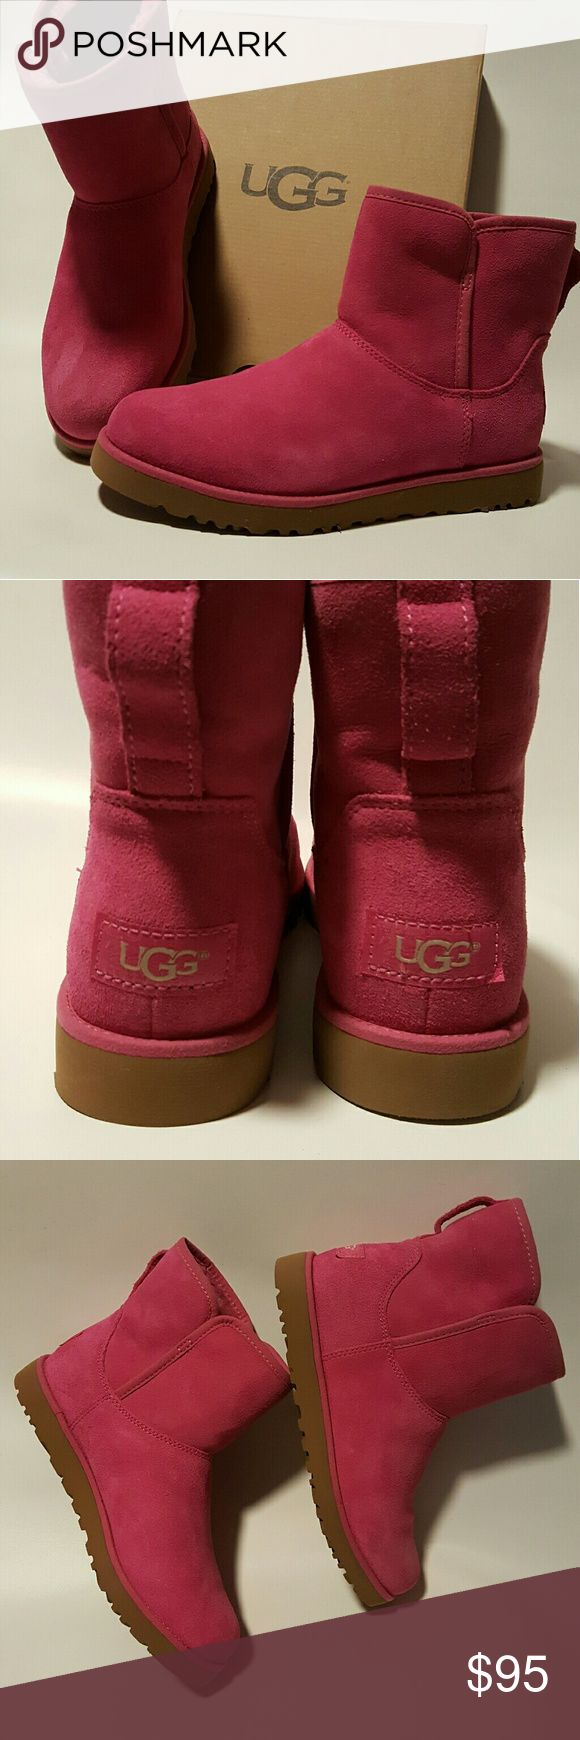 📦 UGG CORY BOOT 📦 New  Slim Short  bootie .  size 6        Furious Fuchsia.  New in box. UGG Shoes Ankle Boots & Booties